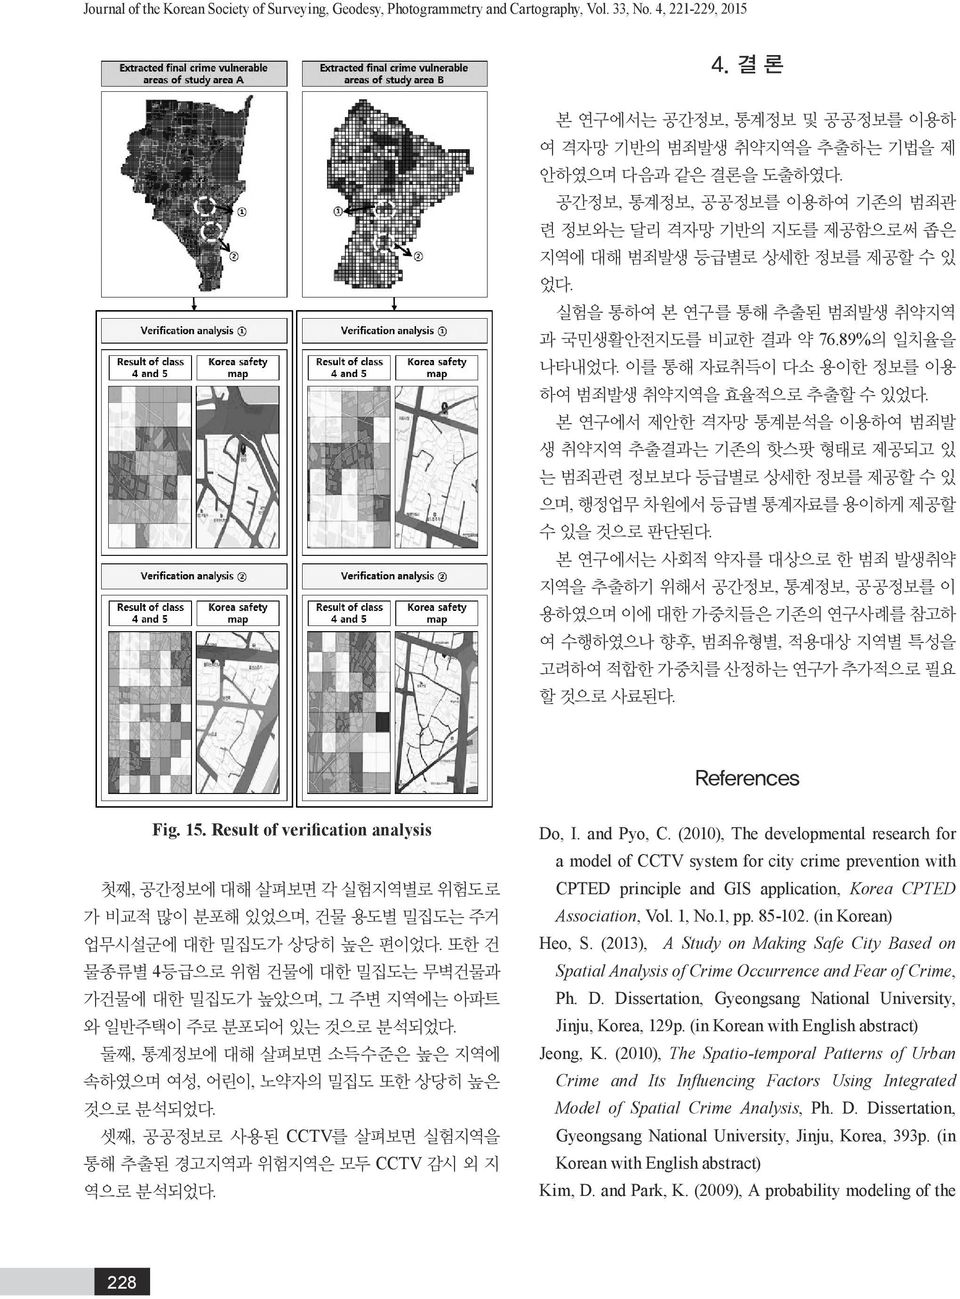 (in Korean) Heo, S. (2013), A Study on Making Safe City Based on Spatial Analysis of Crime Occurrence and Fear of Crime, Ph. D. Dissertation, Gyeongsang National University, Jinju, Korea, 129p.